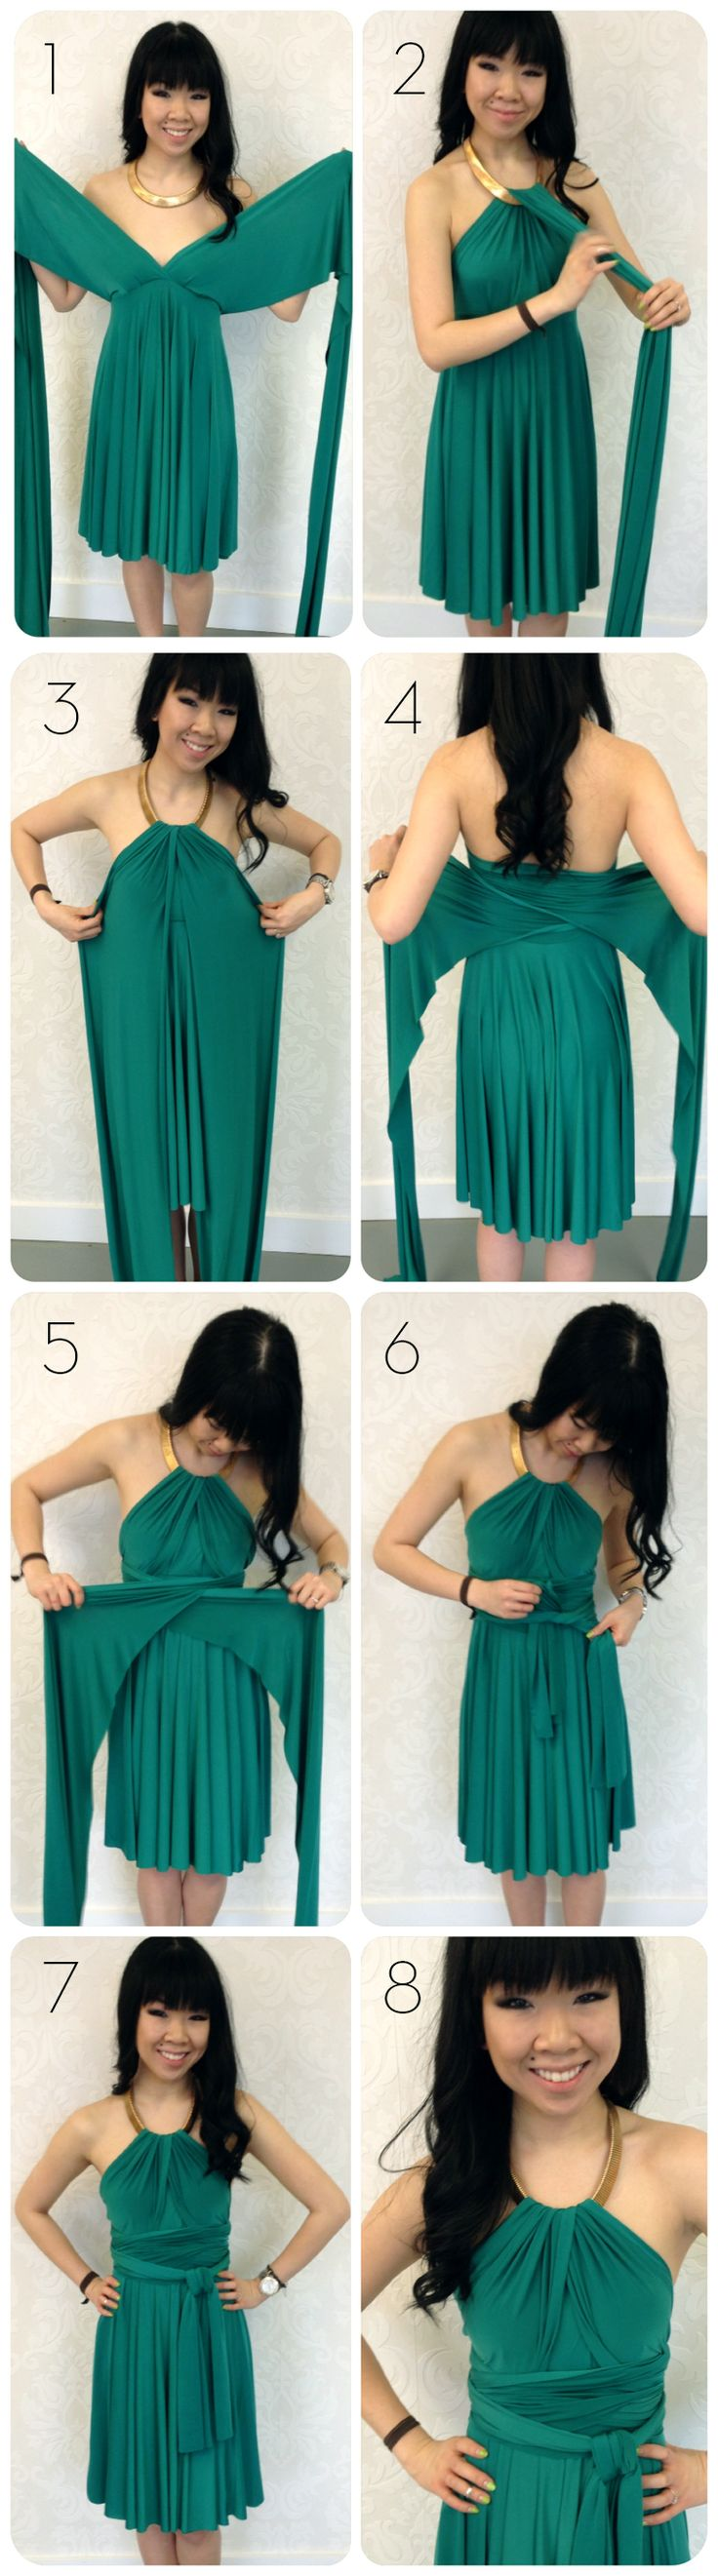 Ann summers multi way dress tutorial